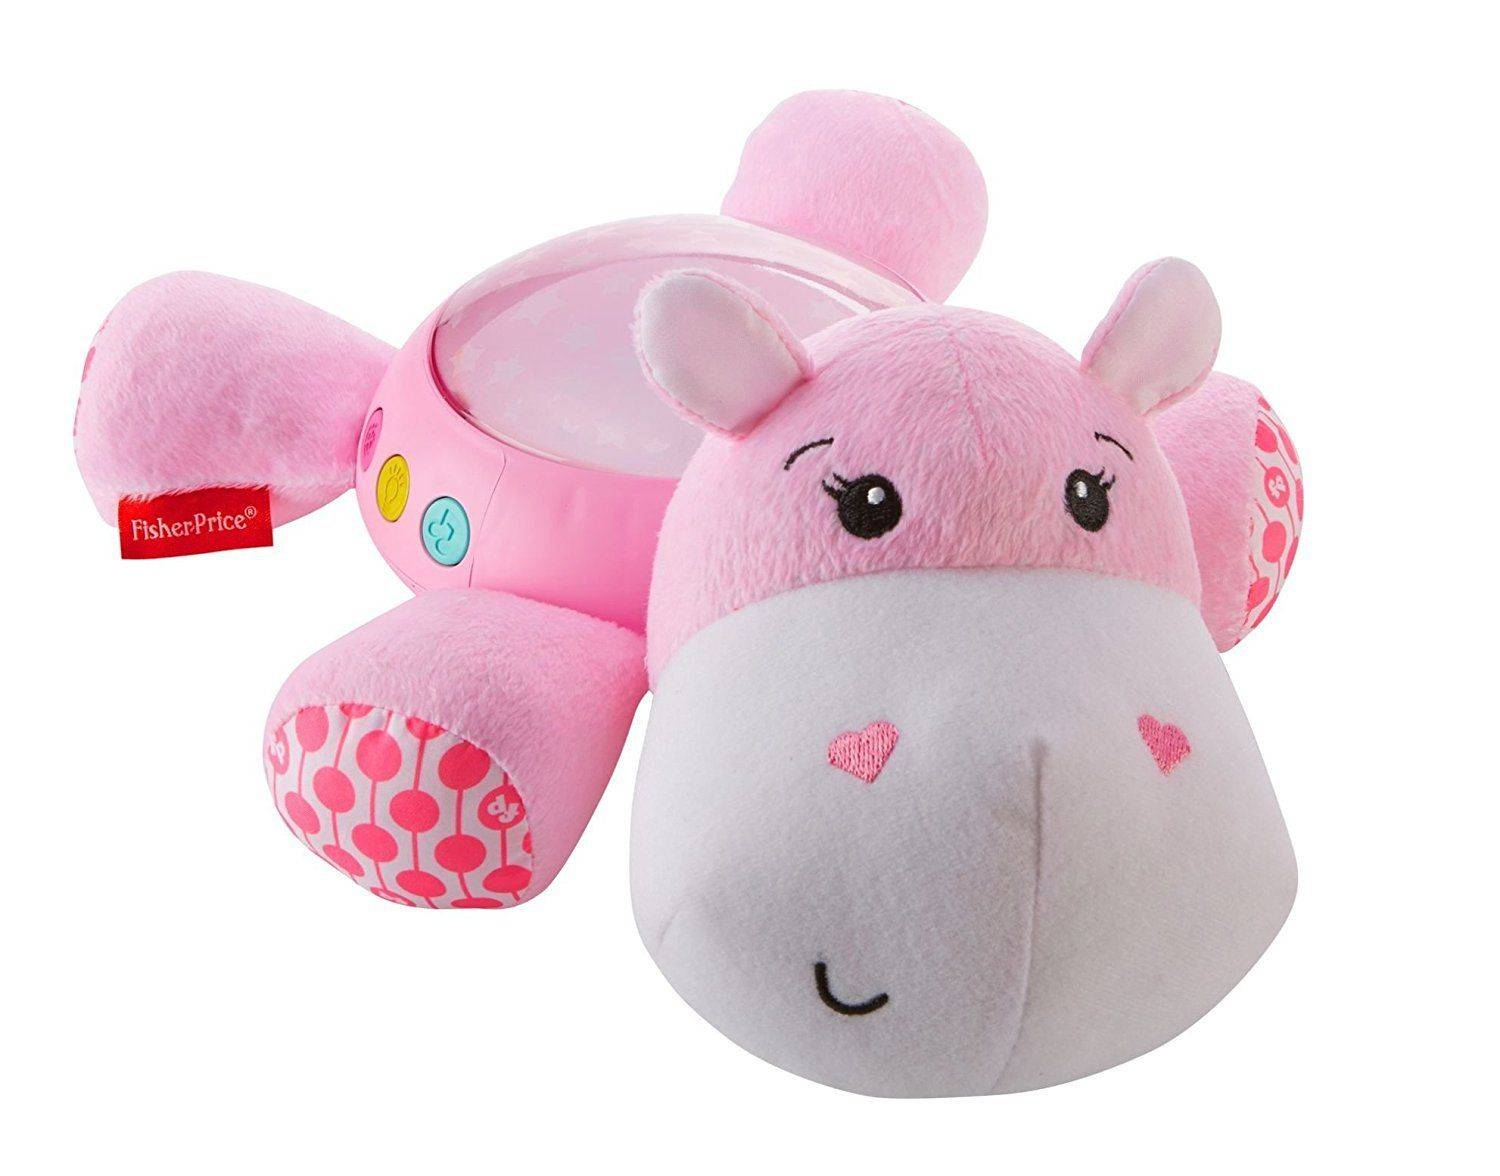 Fisher-Price Plush Projection Soother Pink (FGG89)